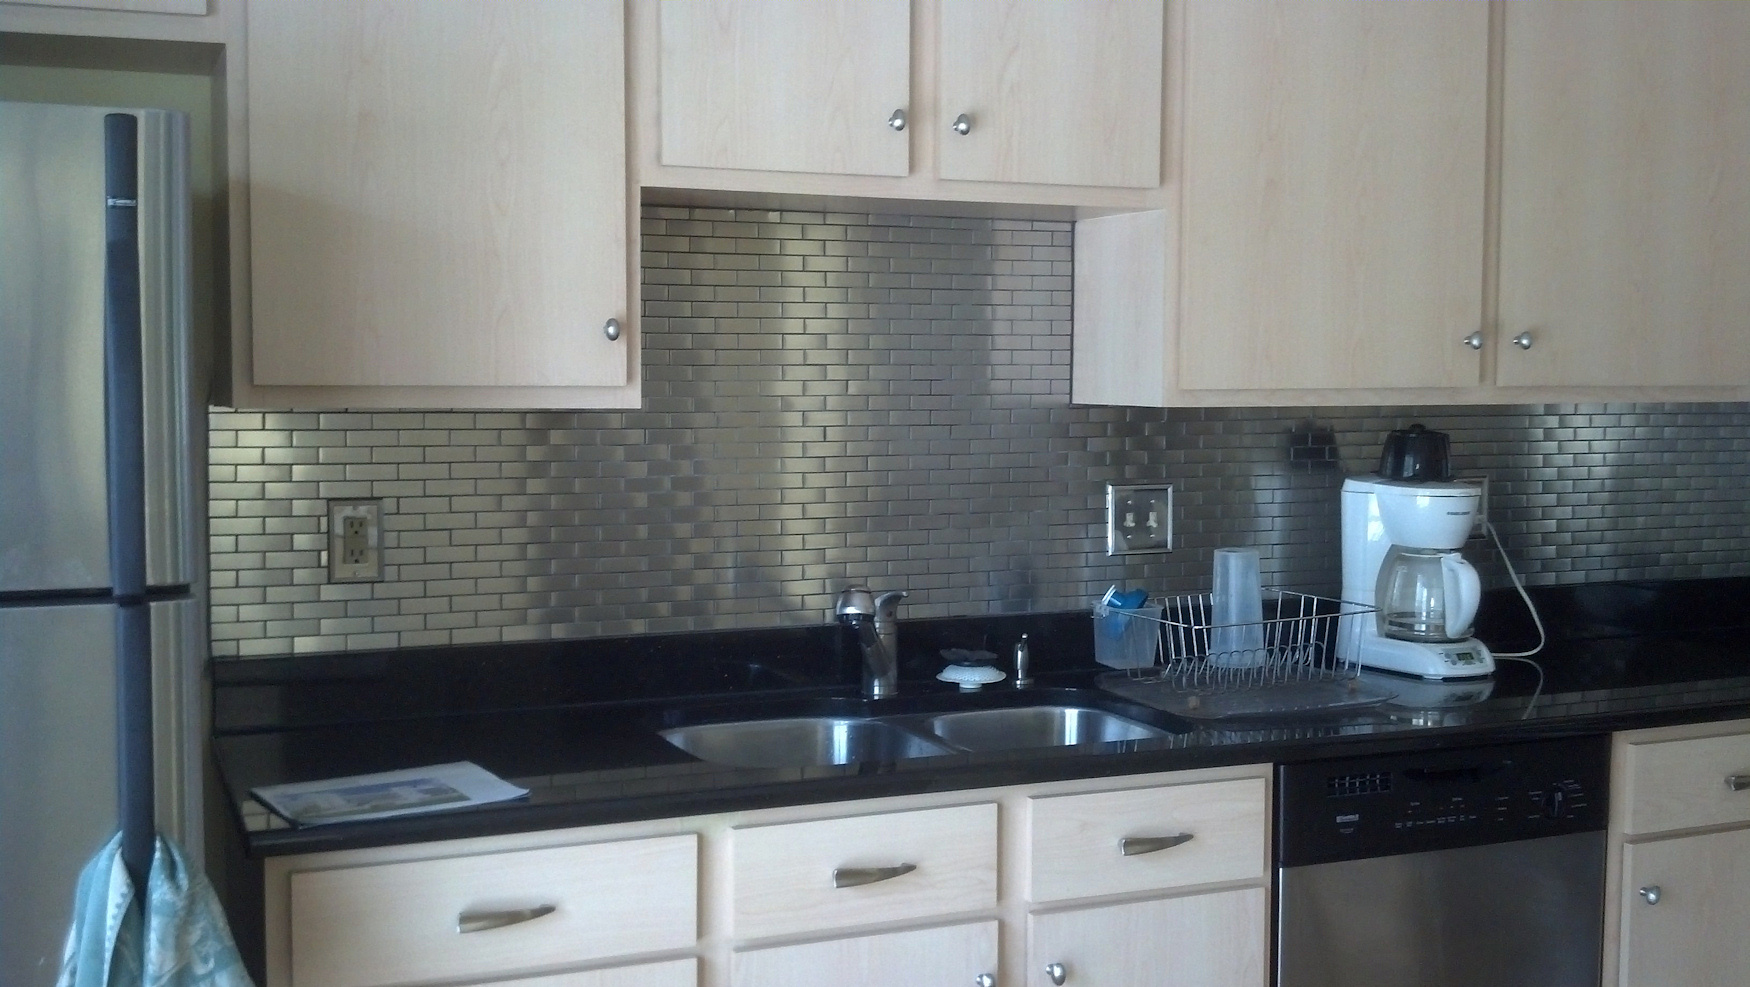 black and white tile kitchen backsplash interior design ikea stainless steel the point pluses homesfeed